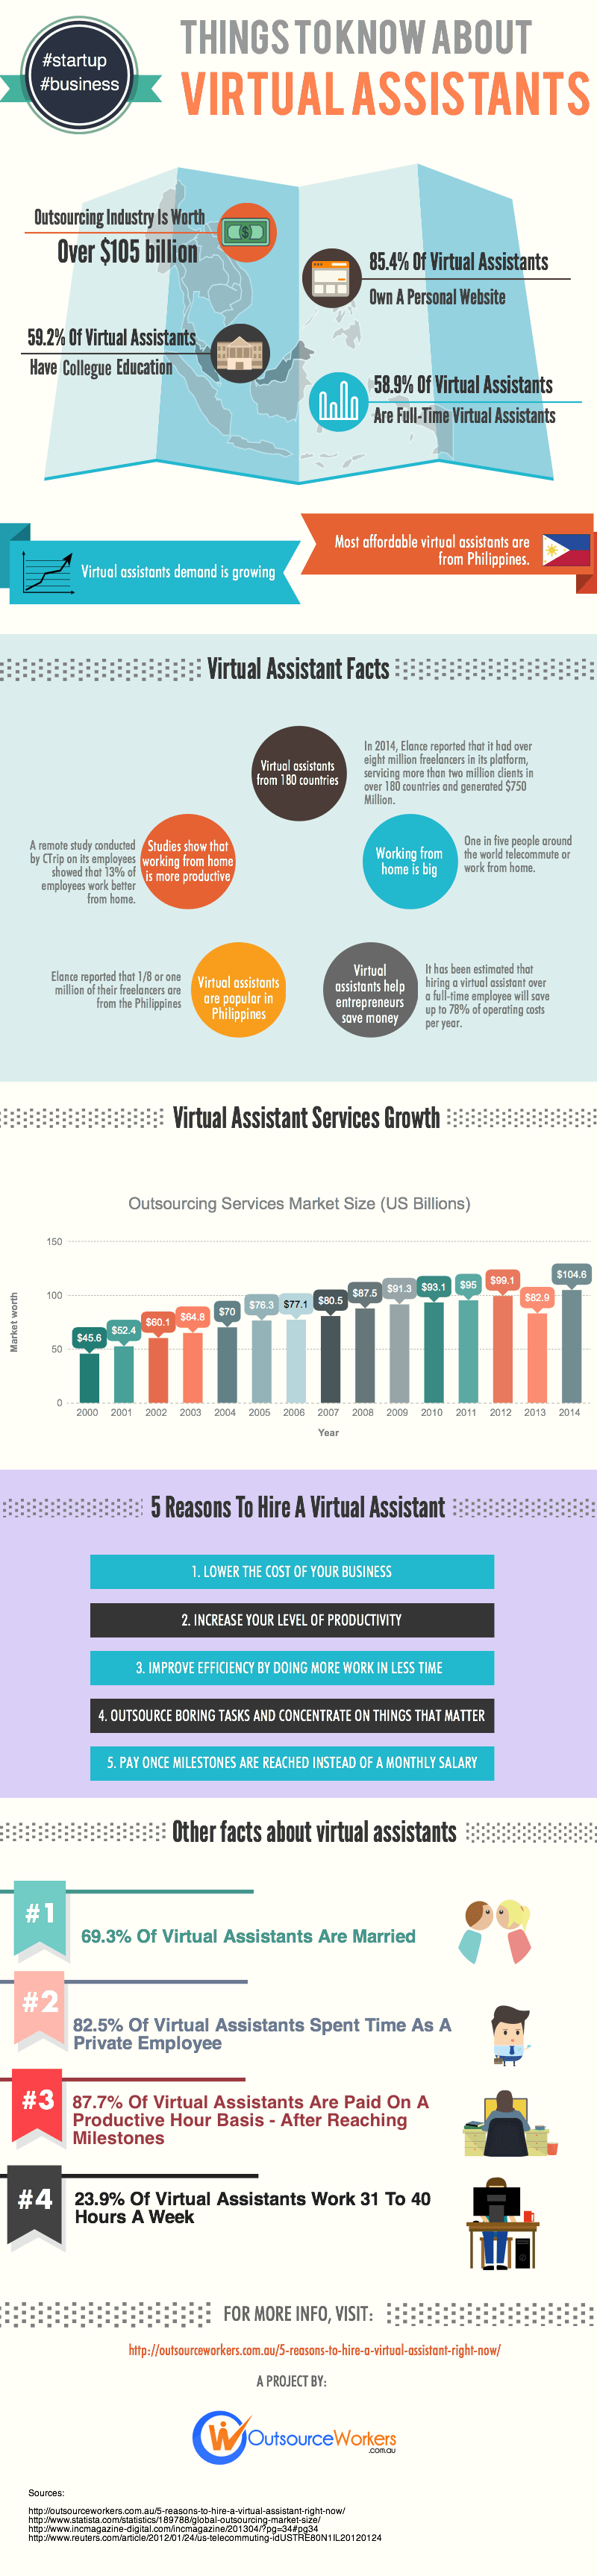 how to grow your business with virtual assistants infographic - Real Virtual Assistant Jobs